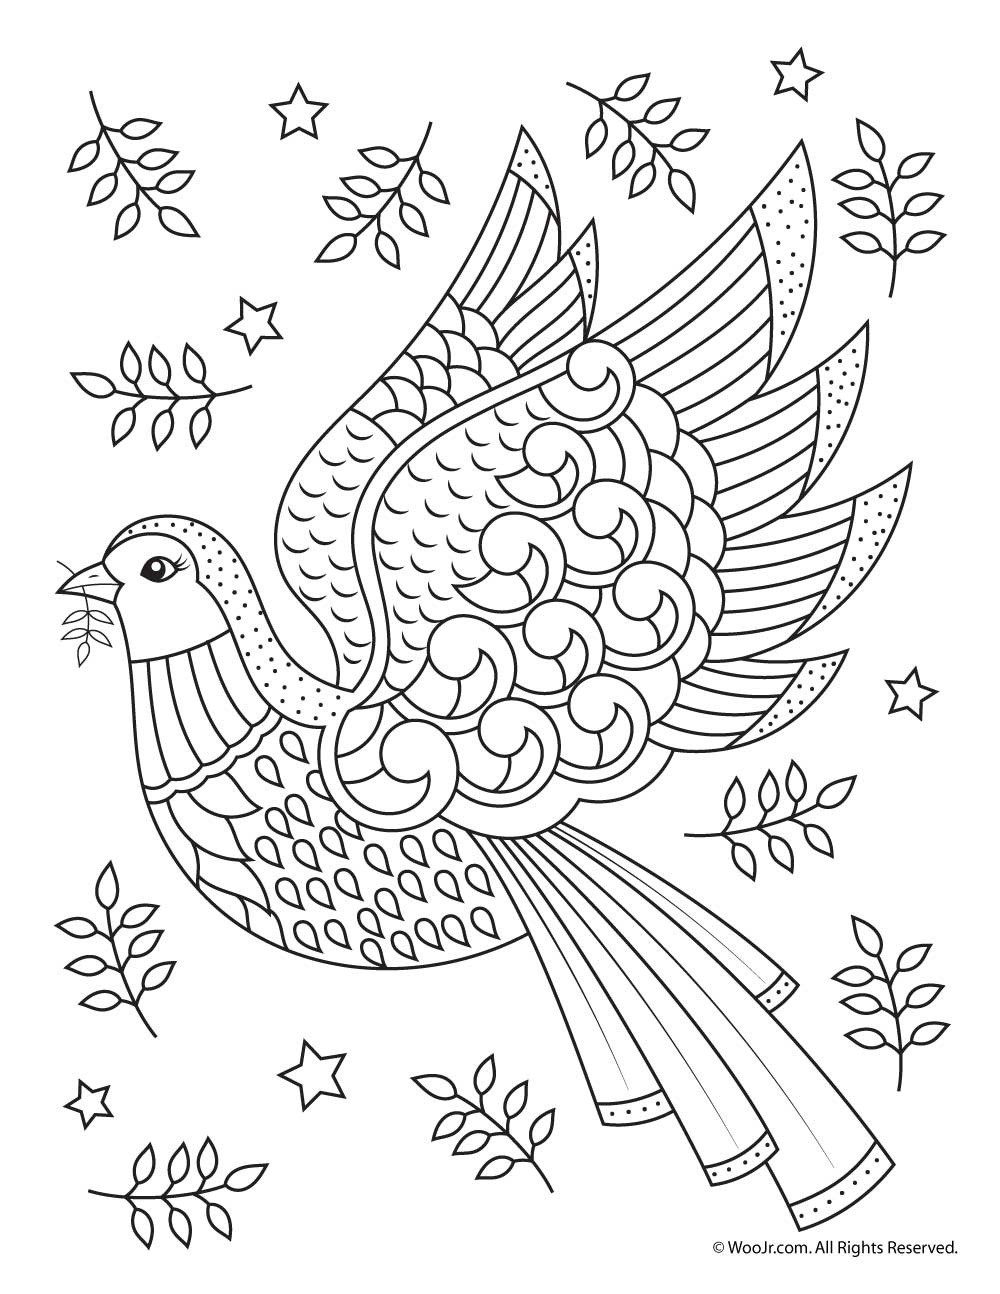 Christmas woods colouring page | Detailed coloring pages ... | 1294x1000